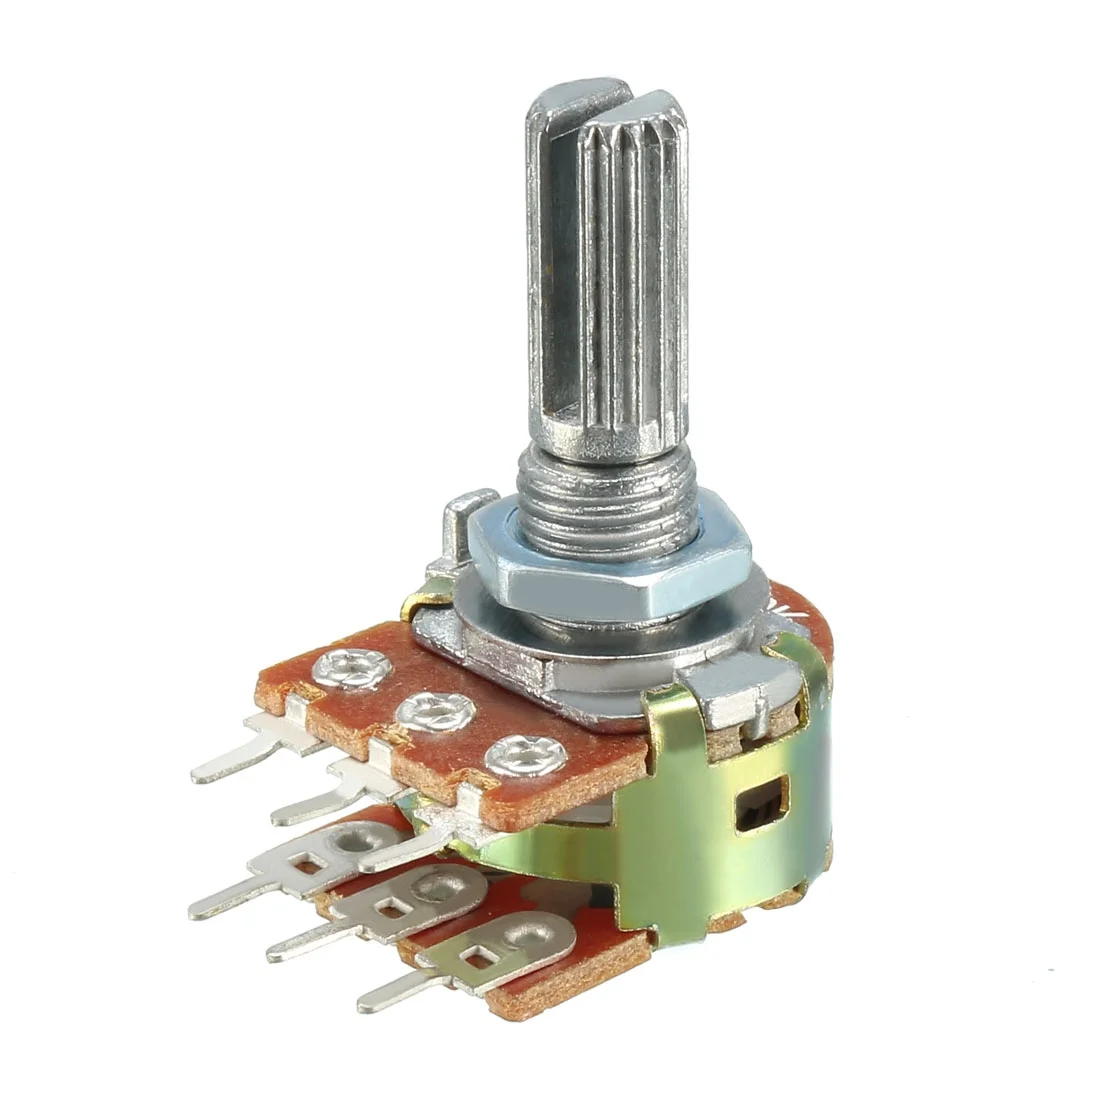 Potenciometro Lineal Doble Placa Metalico Perilla 1/2W 6pines Electronica Electronico Guatemala ElectronicaSMD